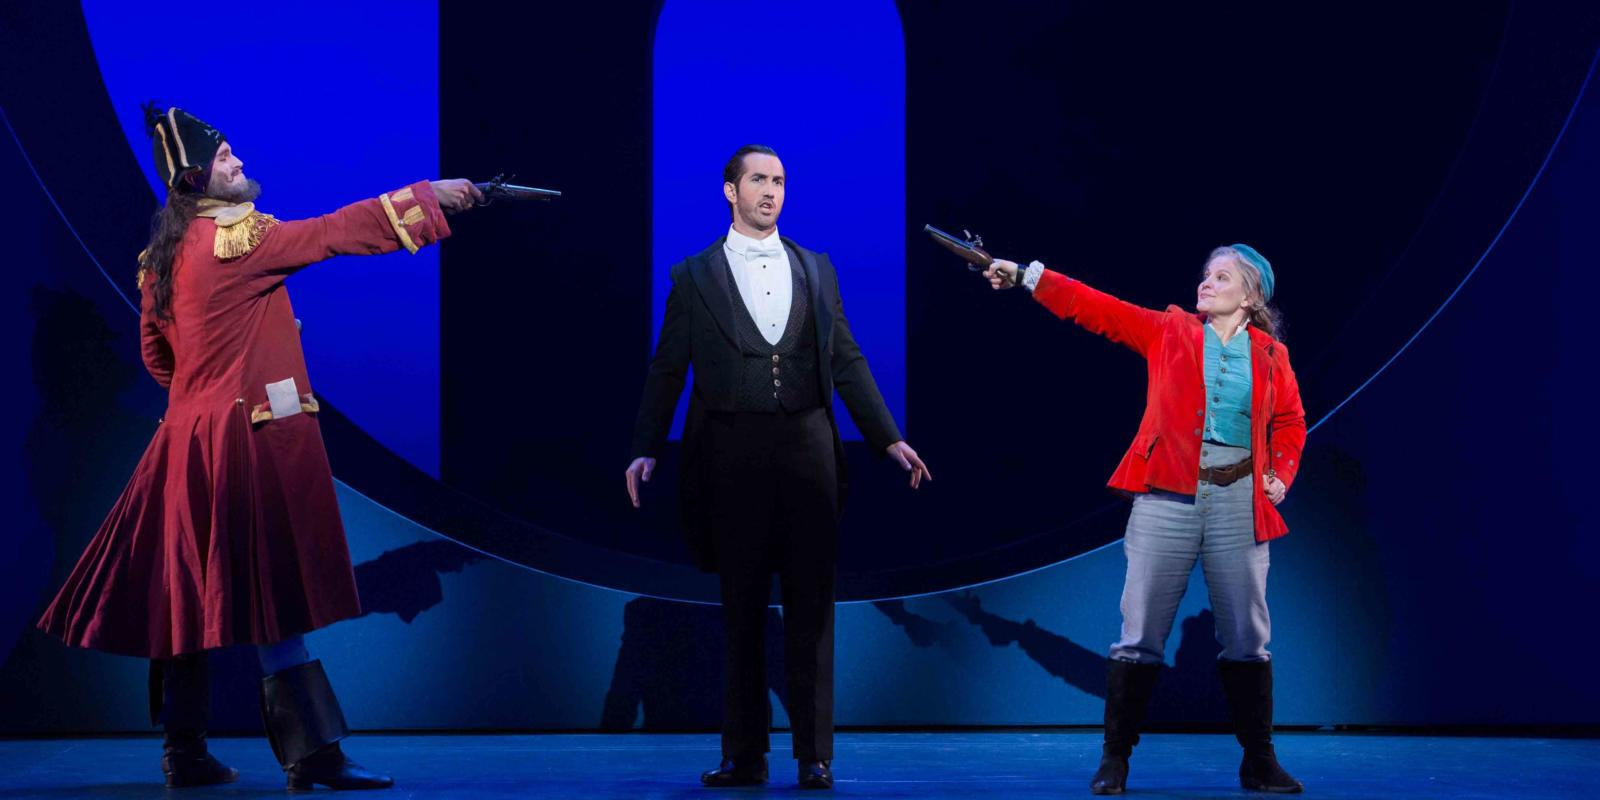 ENO's The Pirates of Penzance - Ashley Riches as The Pirate King, David Webb as Frederic and Lucy Schaufer as Ruth. Photo by Tom Bowles